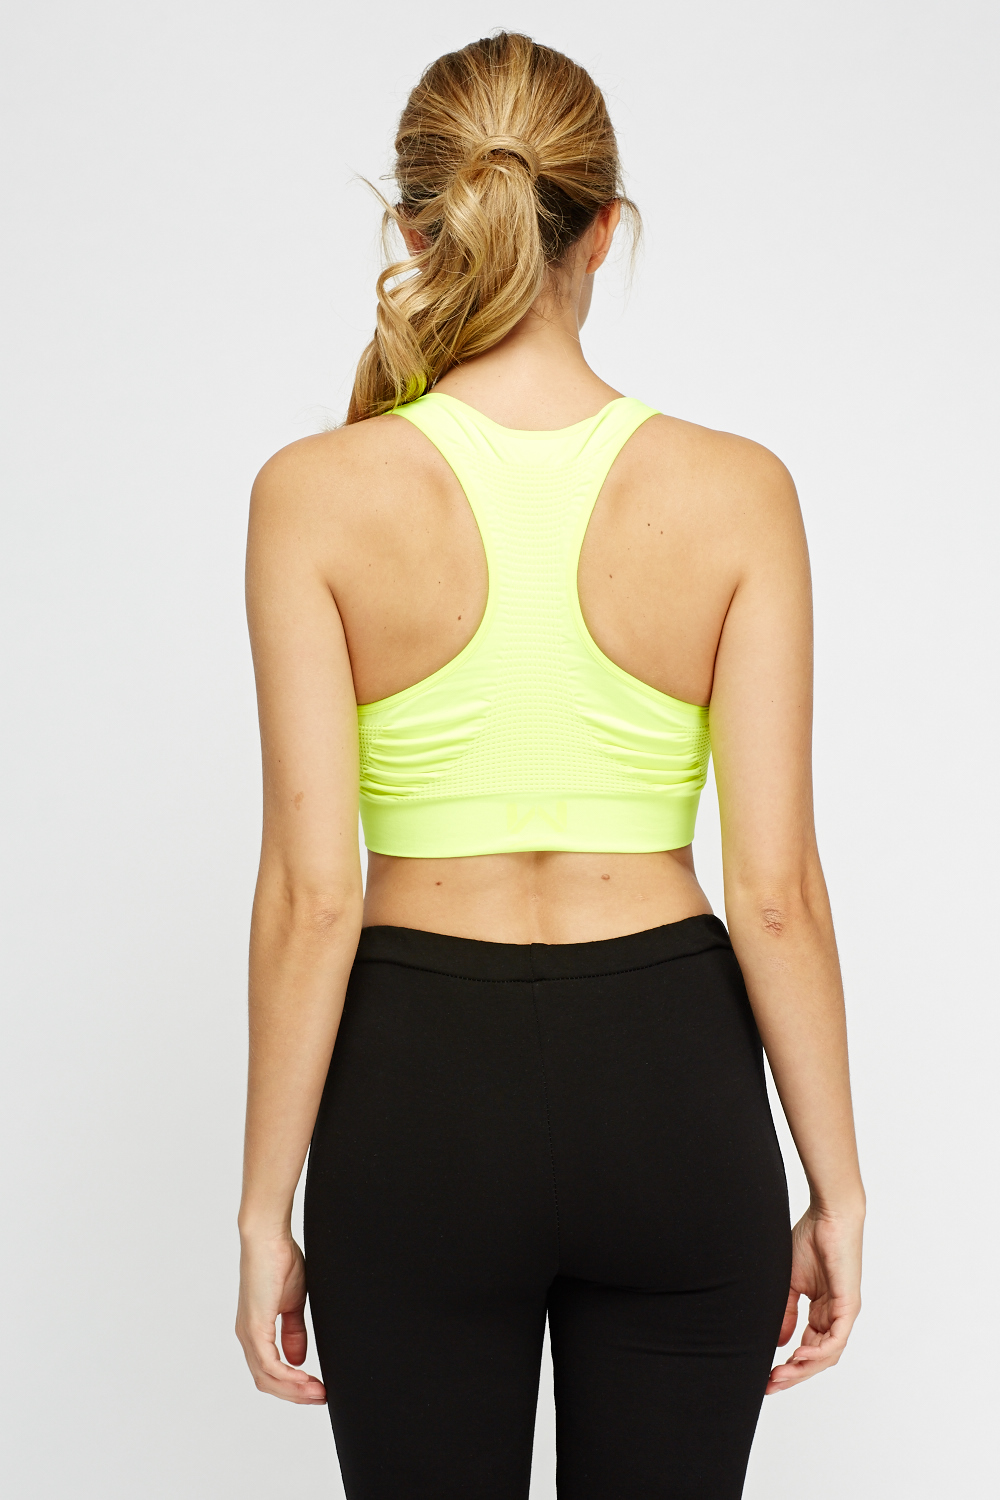 Buy Yellow Bras at Macy's and get FREE SHIPPING with $99 purchase! Great selection of push-up bras, wireless bras & other most popular bra styles and brands.